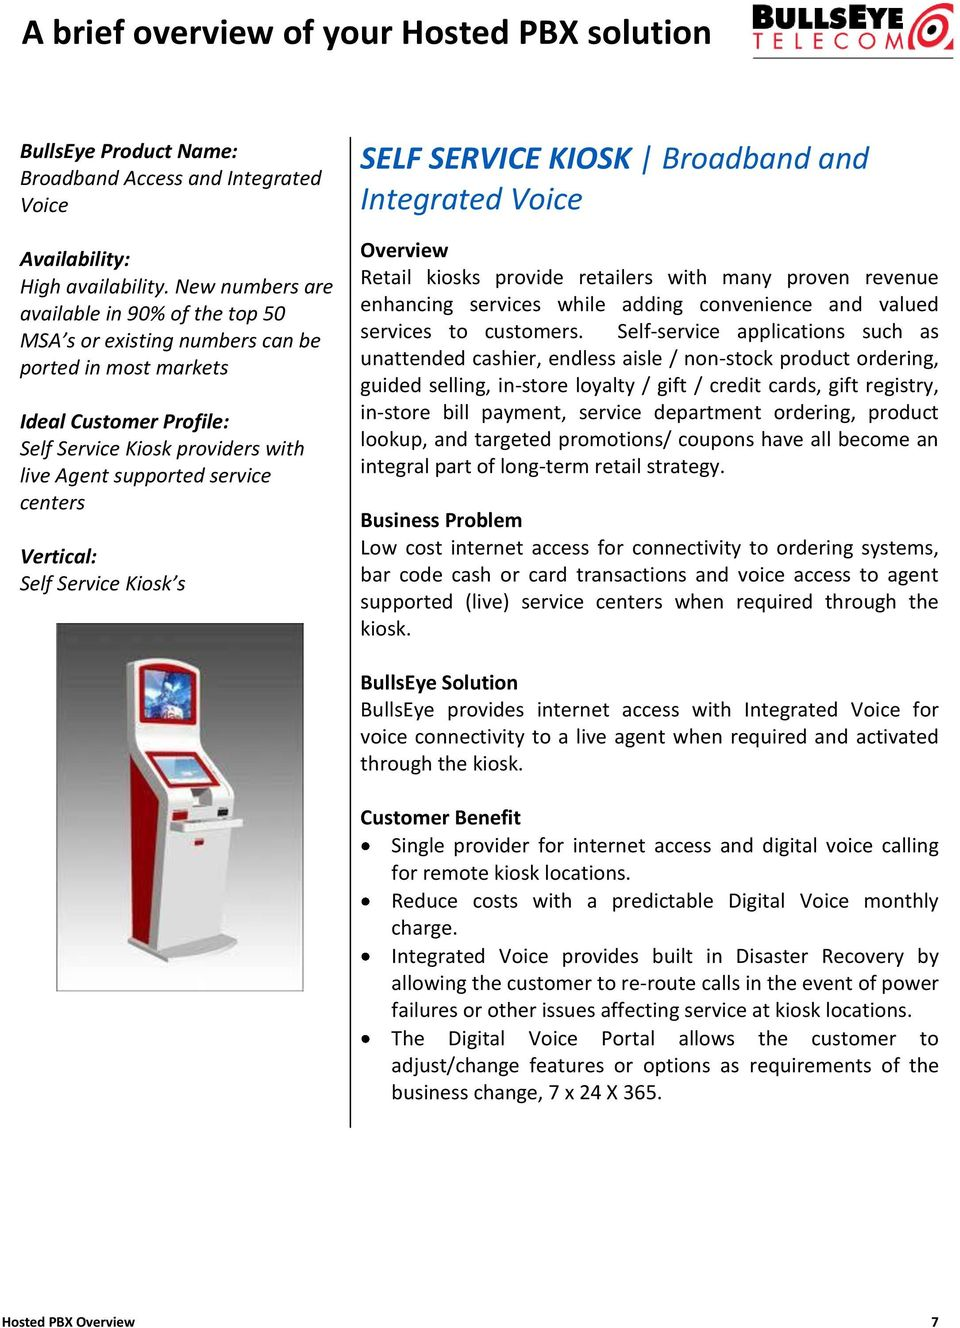 SERVICE KIOSK Broadband and Integrated Voice Retail kiosks provide retailers with many proven revenue enhancing services while adding convenience and valued services to customers.